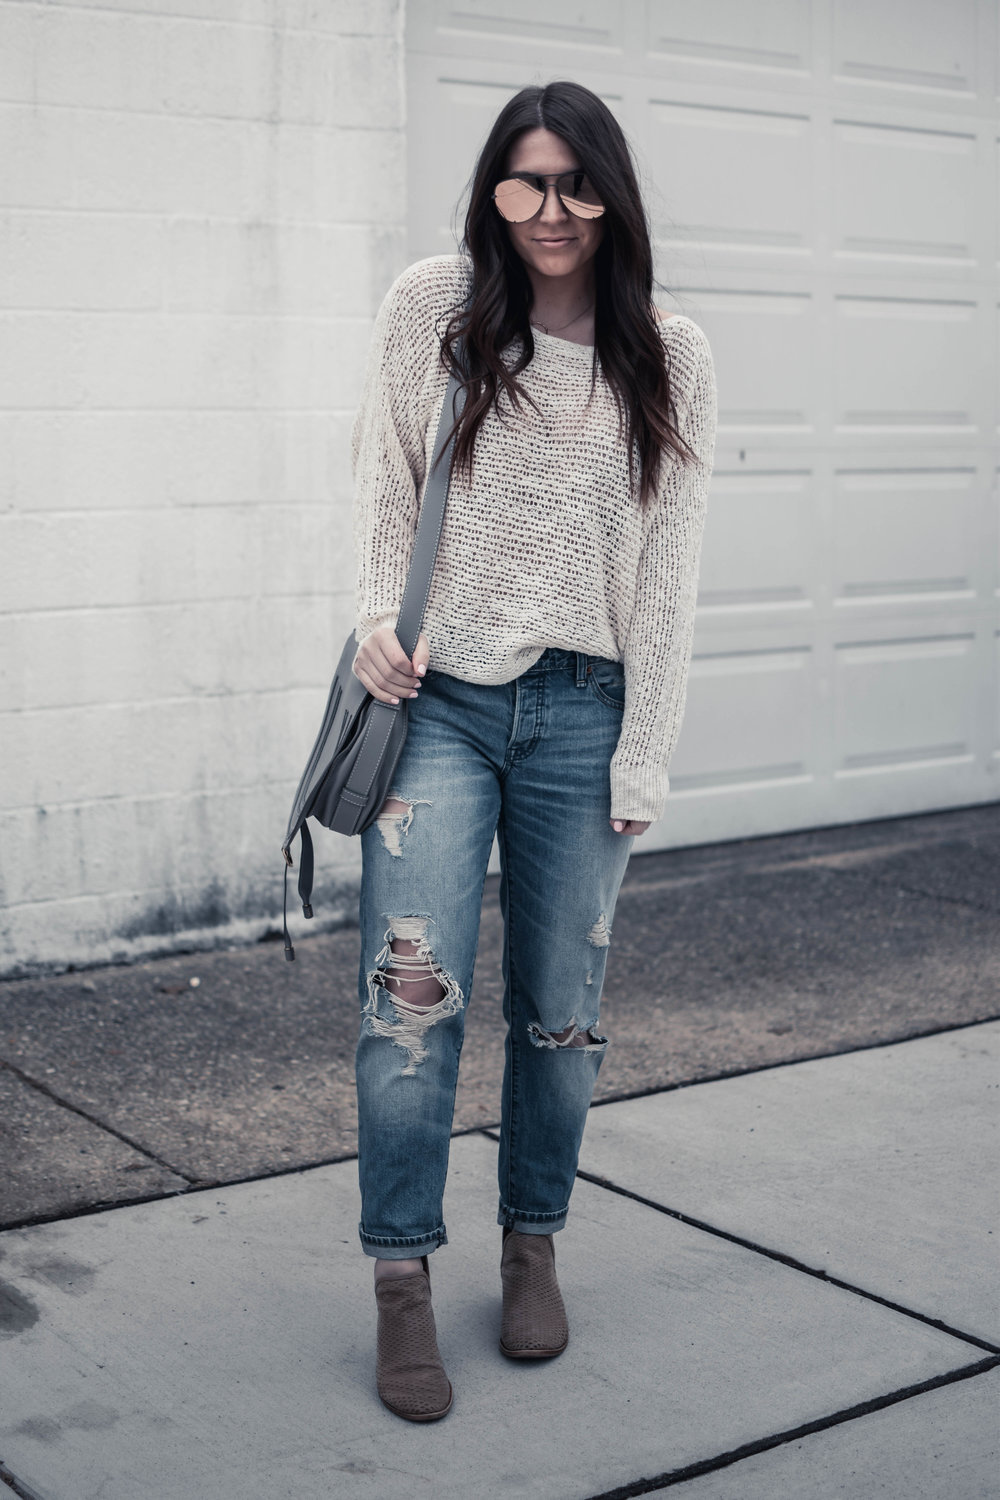 Styling Distressed Denim for the Spring Transition | Pine Barren Beauty | light weight sweater + distressed denim, Abercrombie denim, oversized sunglasses, spring outfit idea, spring transition outfit idea, spring outfit inspiration